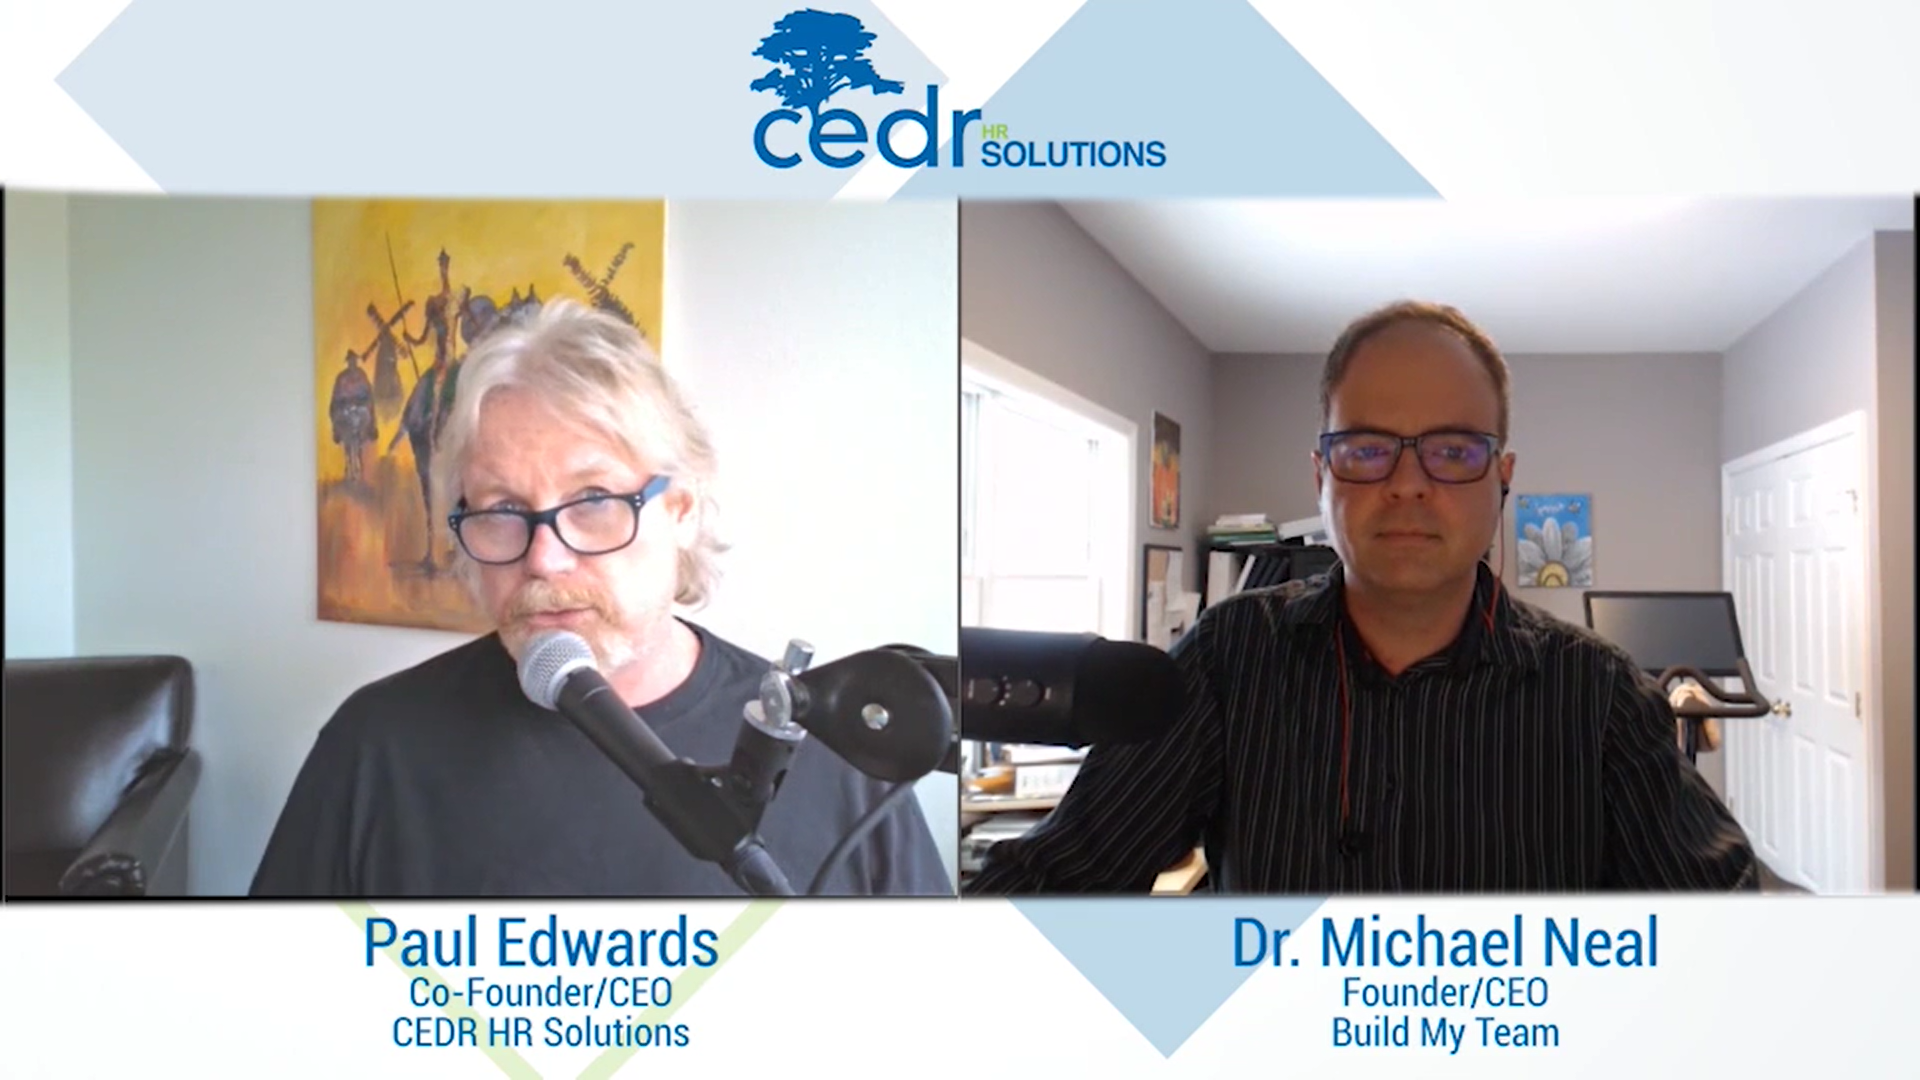 a conversation between cedr ceo paul edwards and build my team ceo dr. michael neal